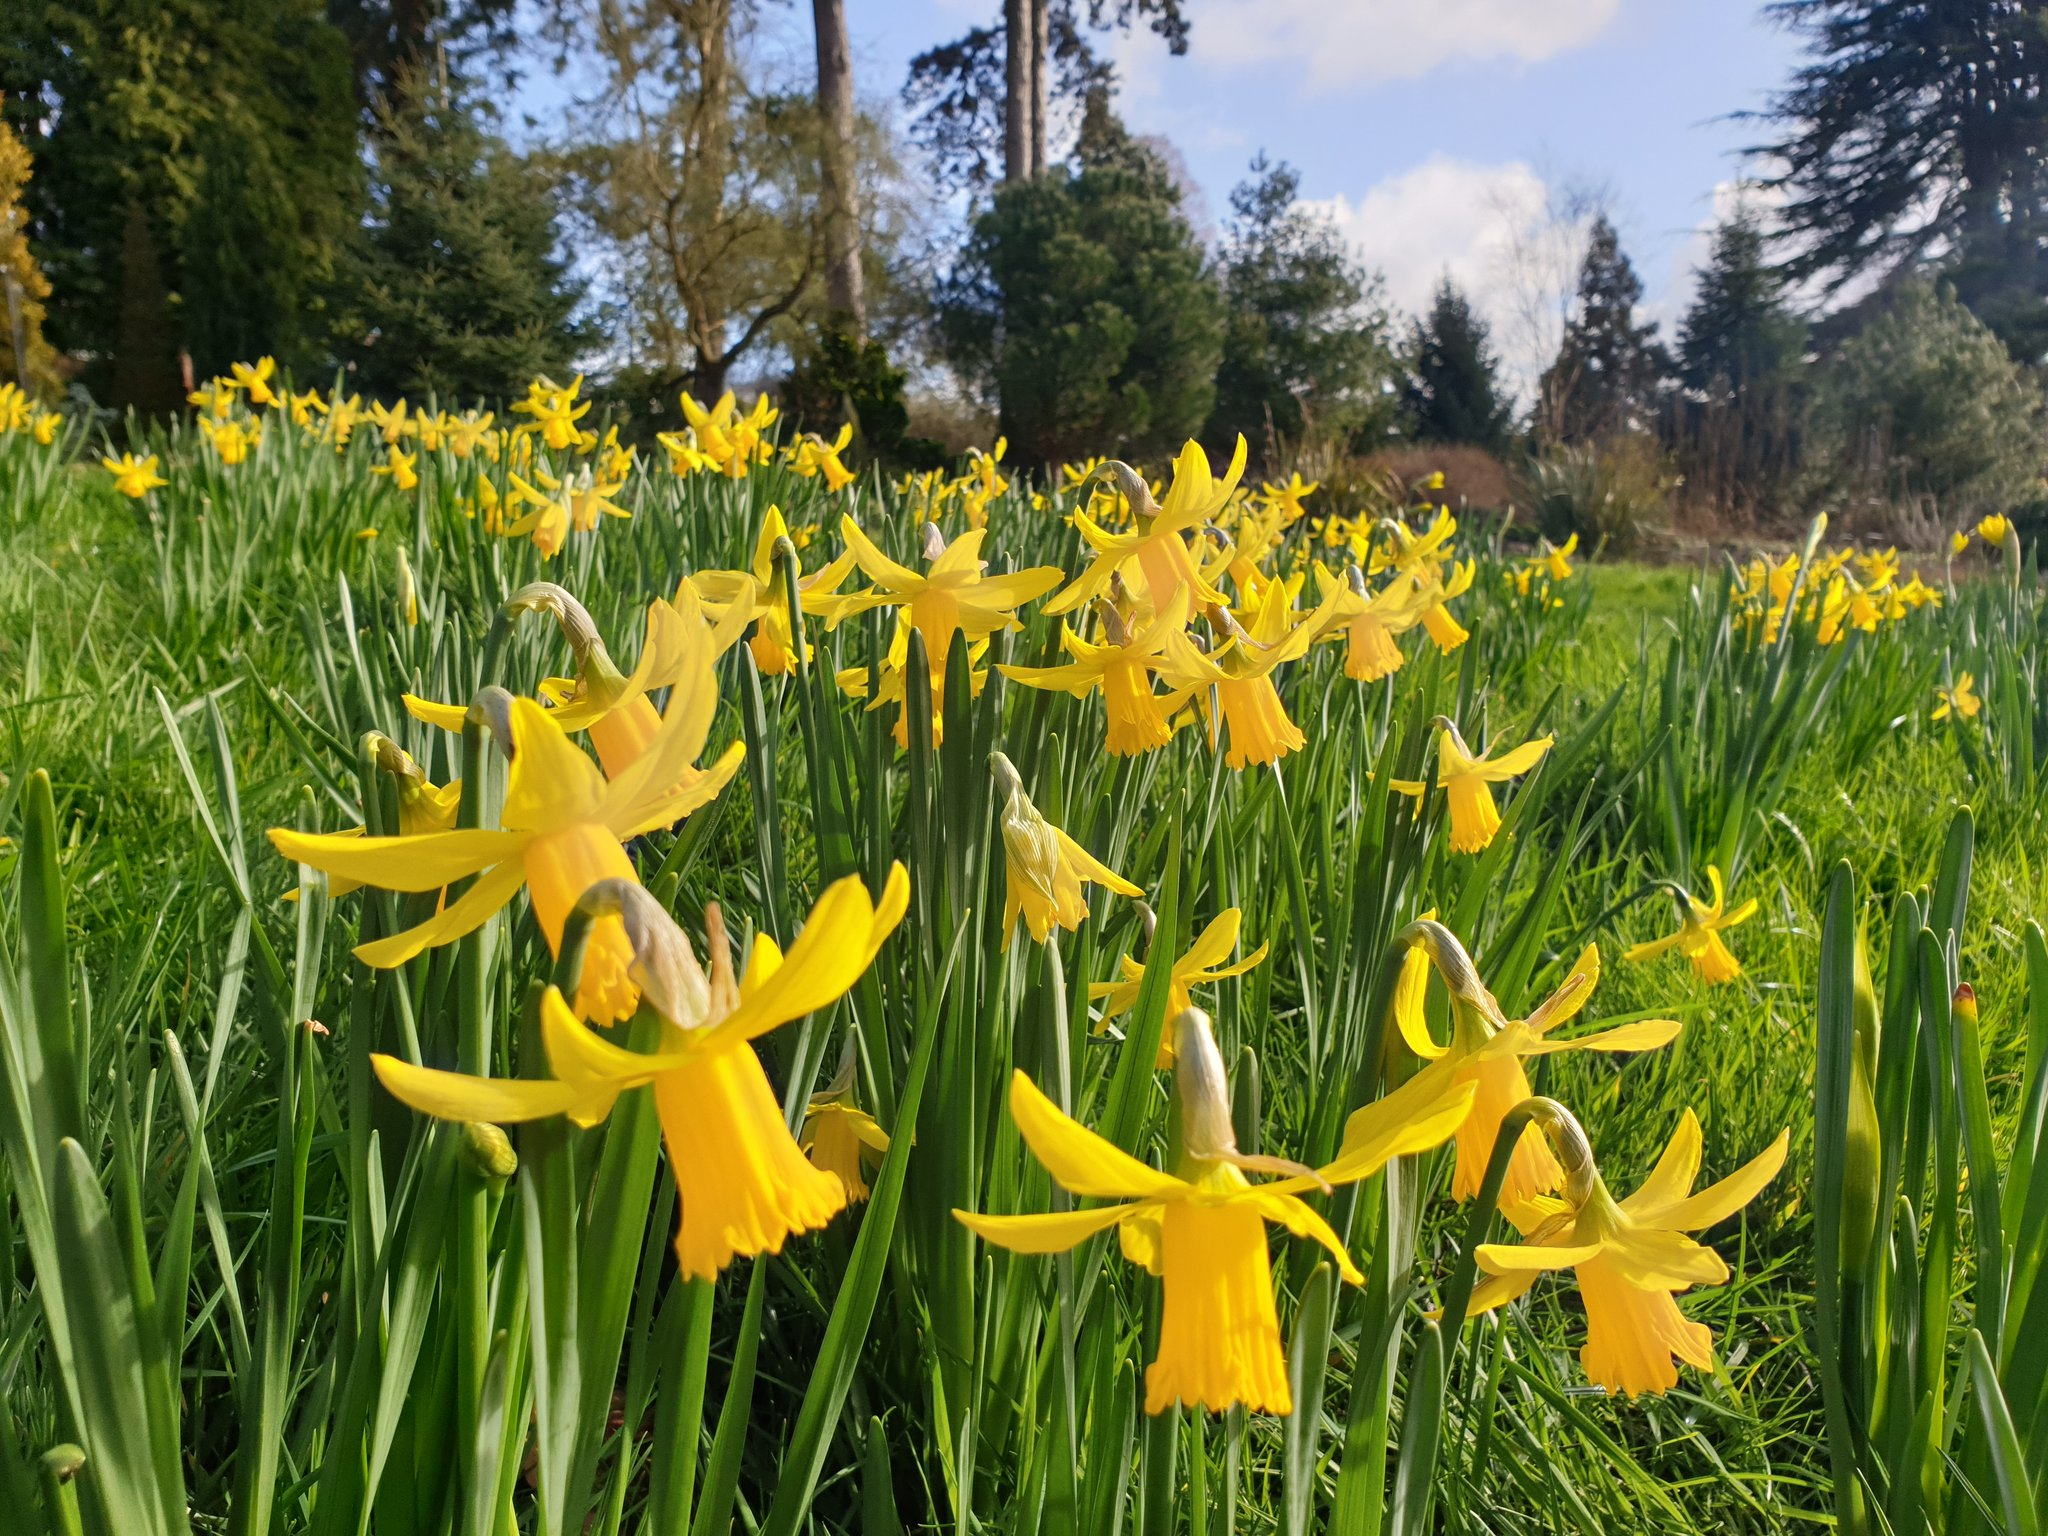 Daffodils on West Lawn